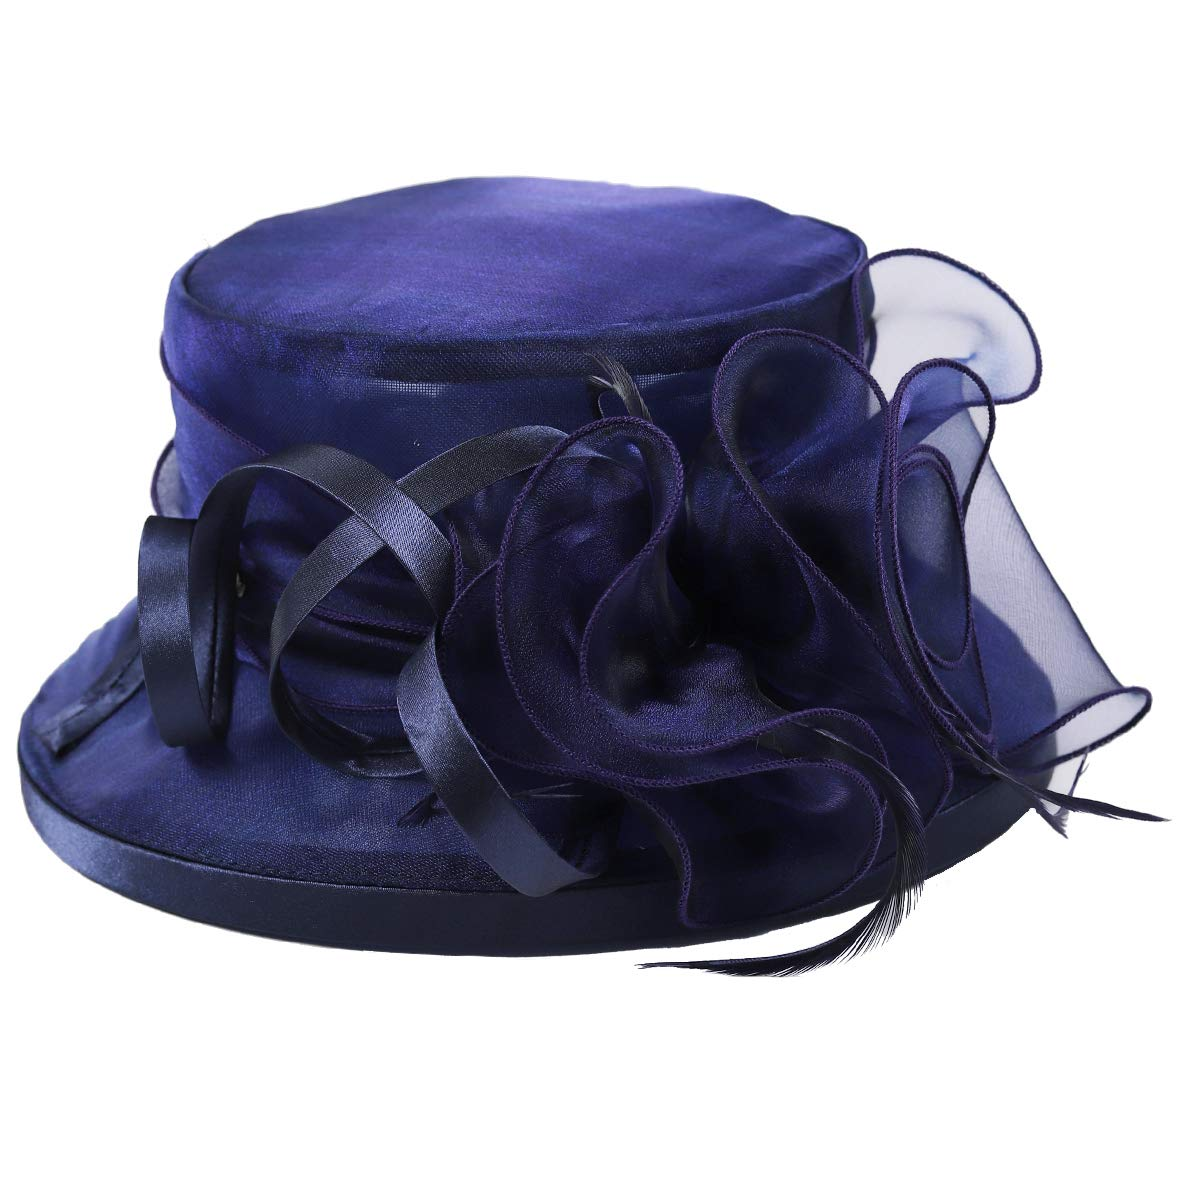 Lady Church Derby Dress Cloche Hat Fascinator Floral Tea Party Wedding Bucket Hat S051 (S043-Navy) by Ruphedy (Image #4)